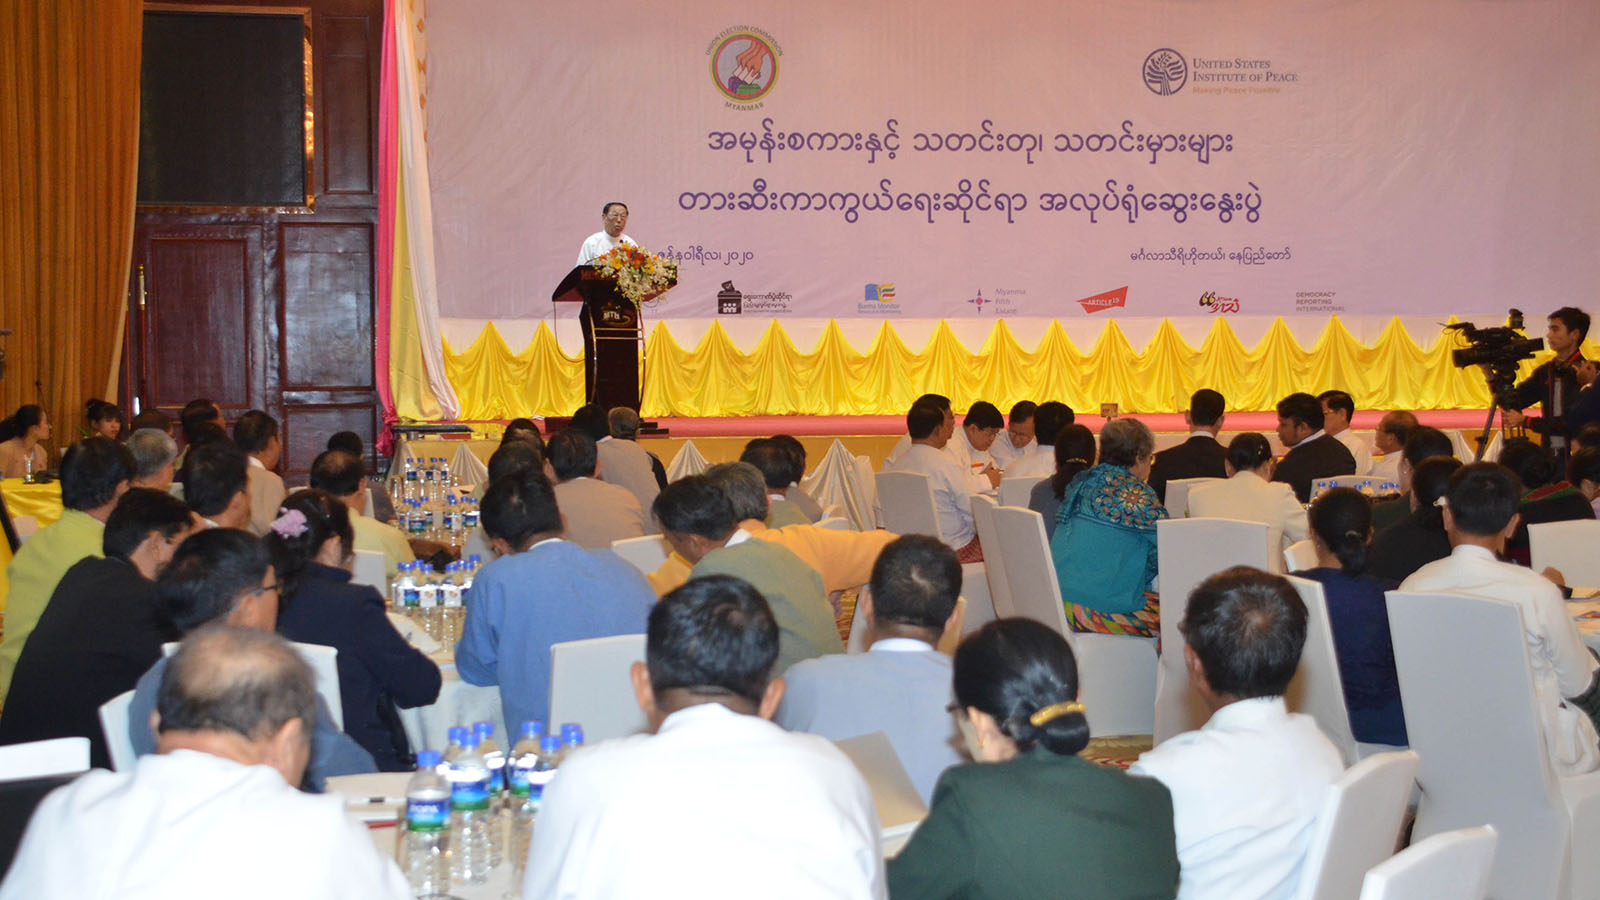 UEC Chairman U Hla Thein delivers the opening speech at the workshop on prevention of hate speech, fake news and misleading information in Nay Pyi Taw. Photo: MNA